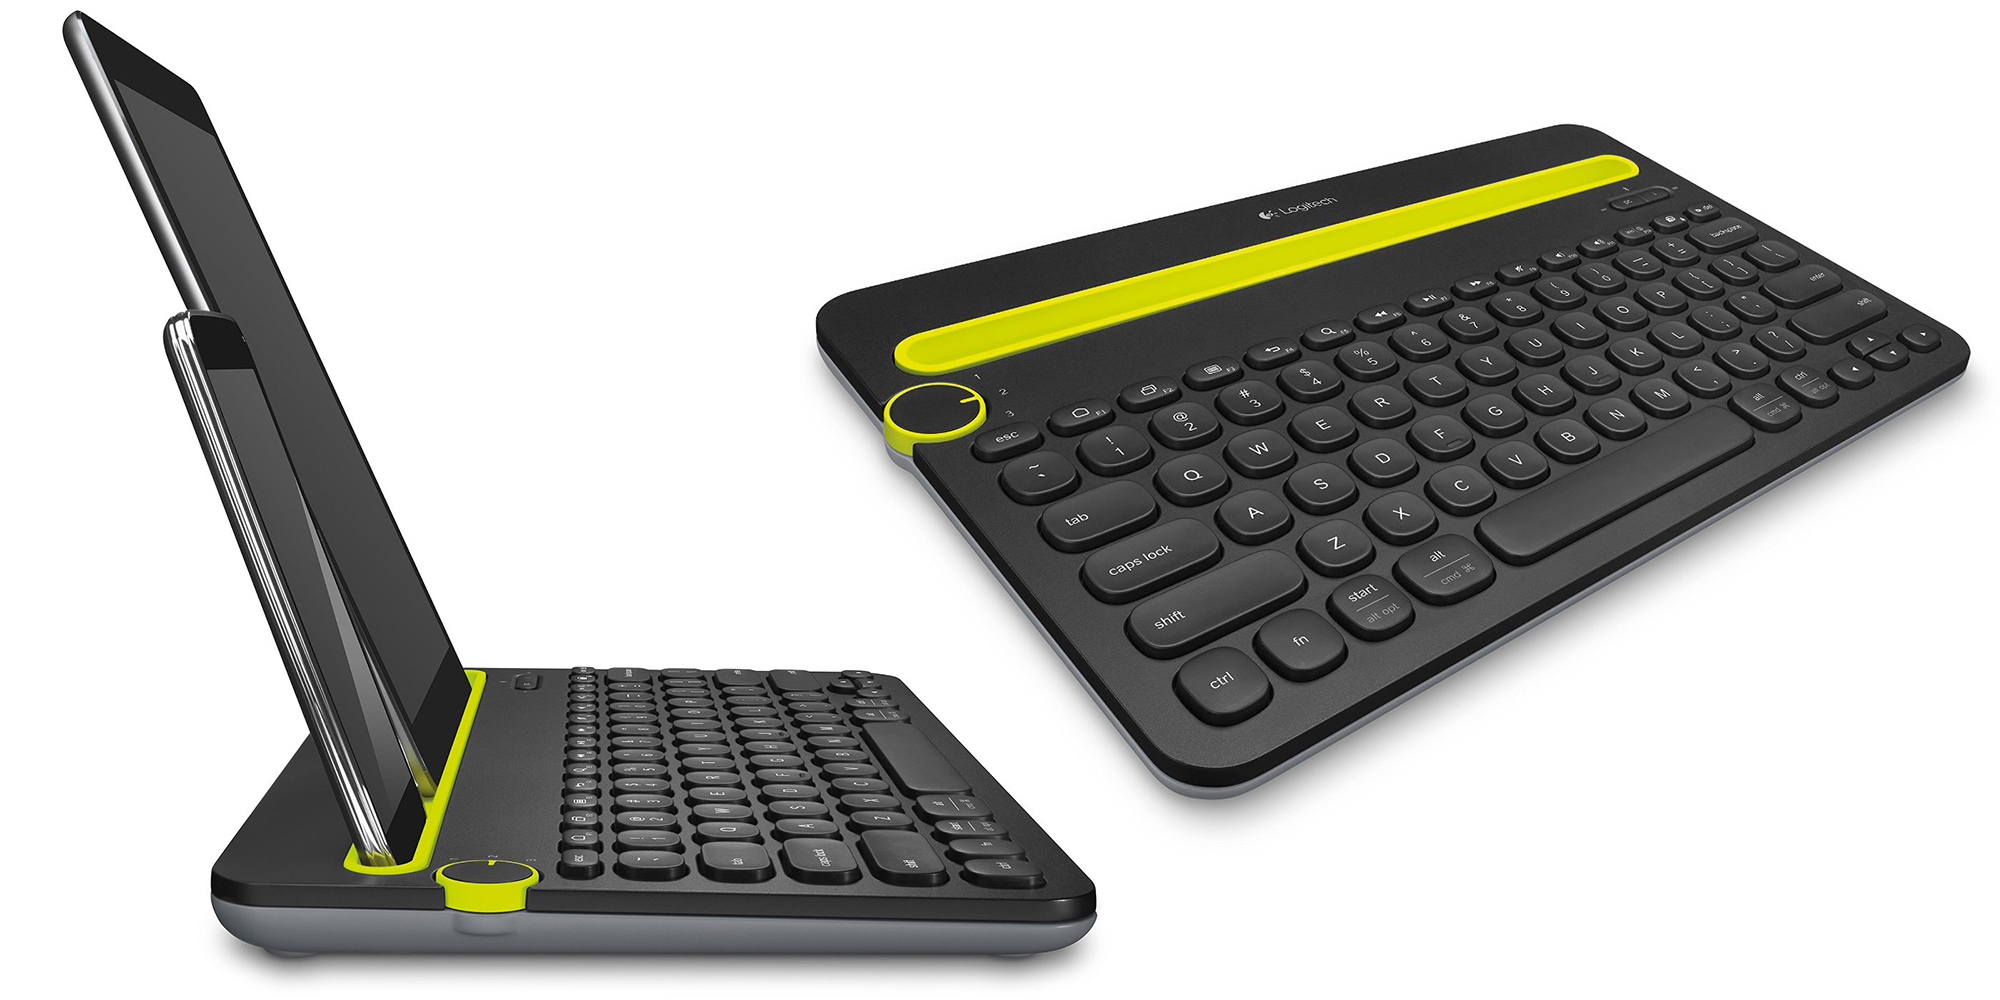 Pick up Logitech's multi-device Bluetooth keyboard for $16 shipped (Refurb, Orig. $50)